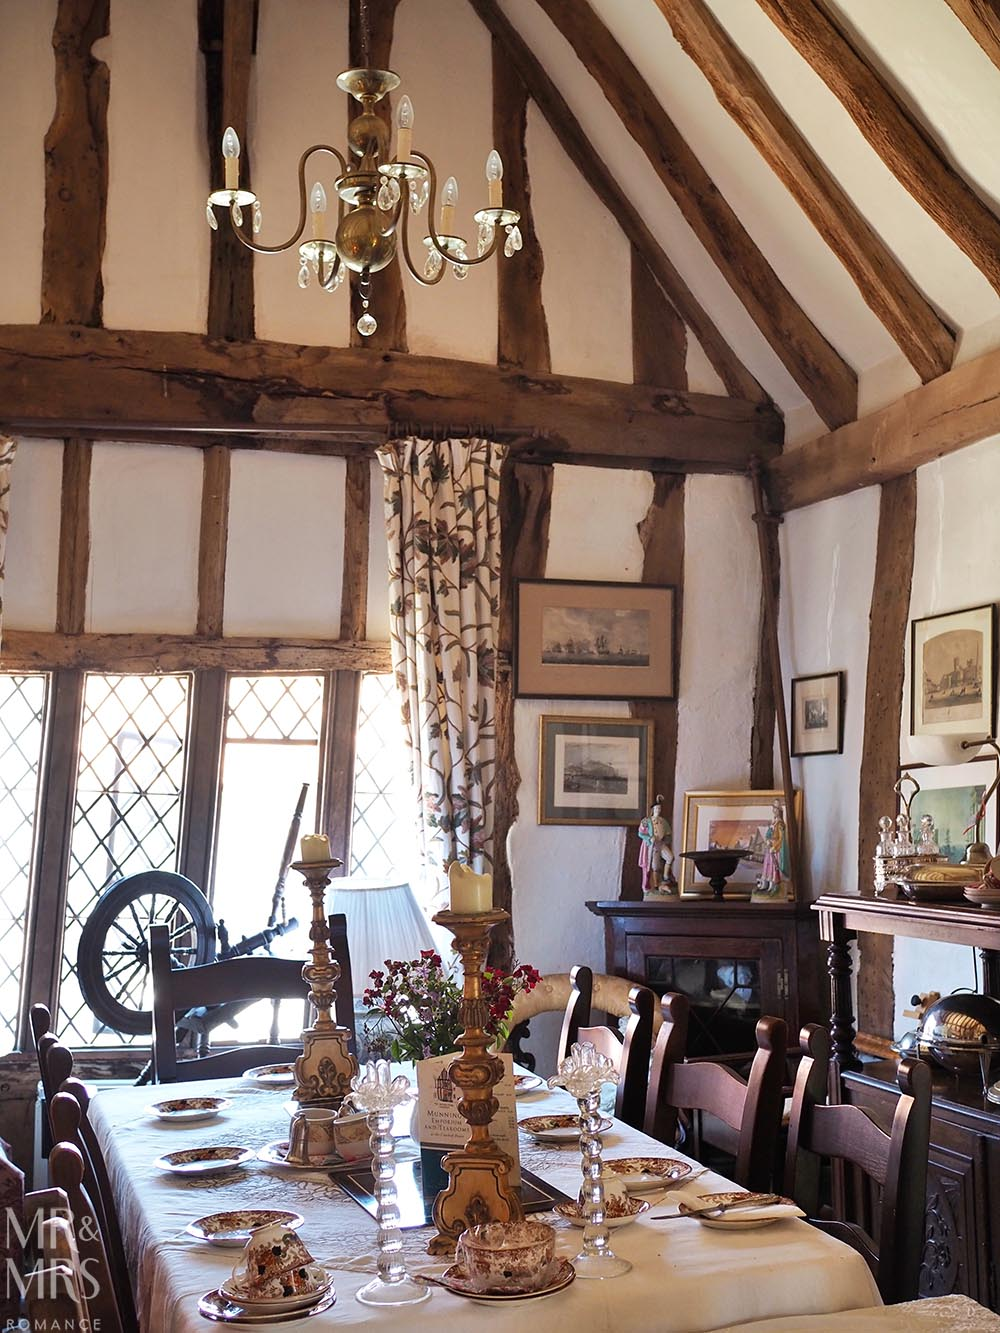 Out of London - Lavenham, Suffolk - Britain's finest Medieval village - Munnings Tea Rooms